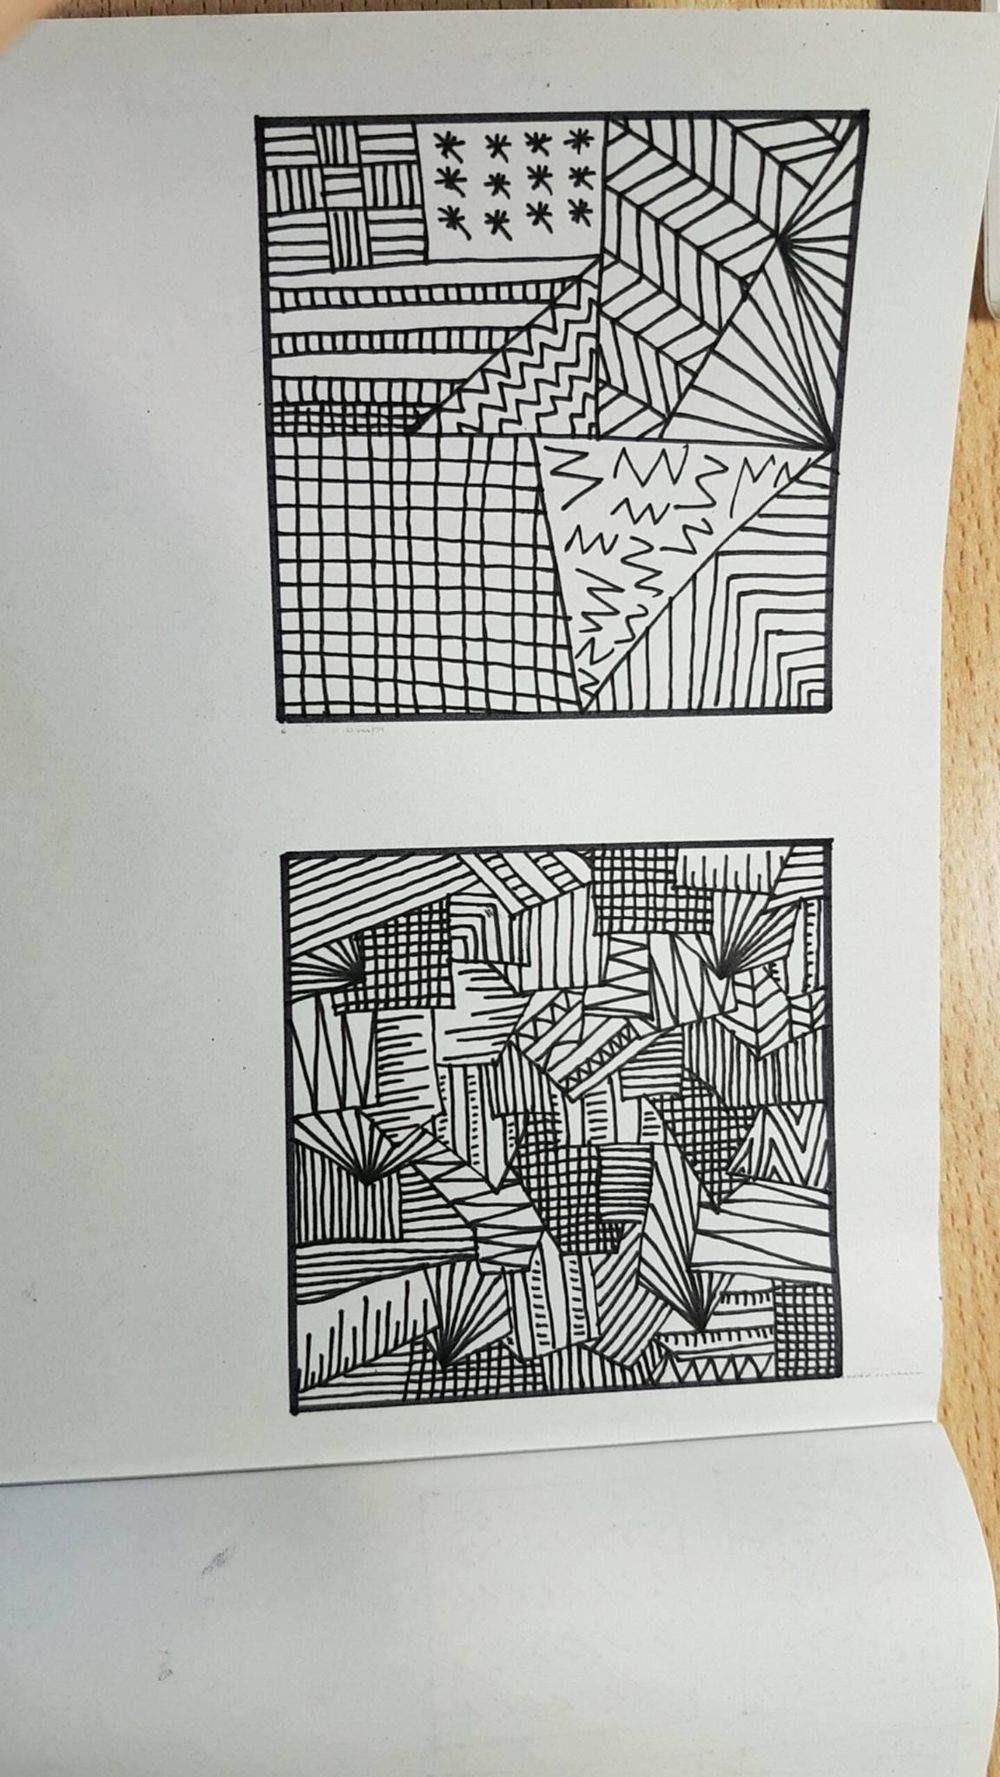 Doodling experiments - image 3 - student project